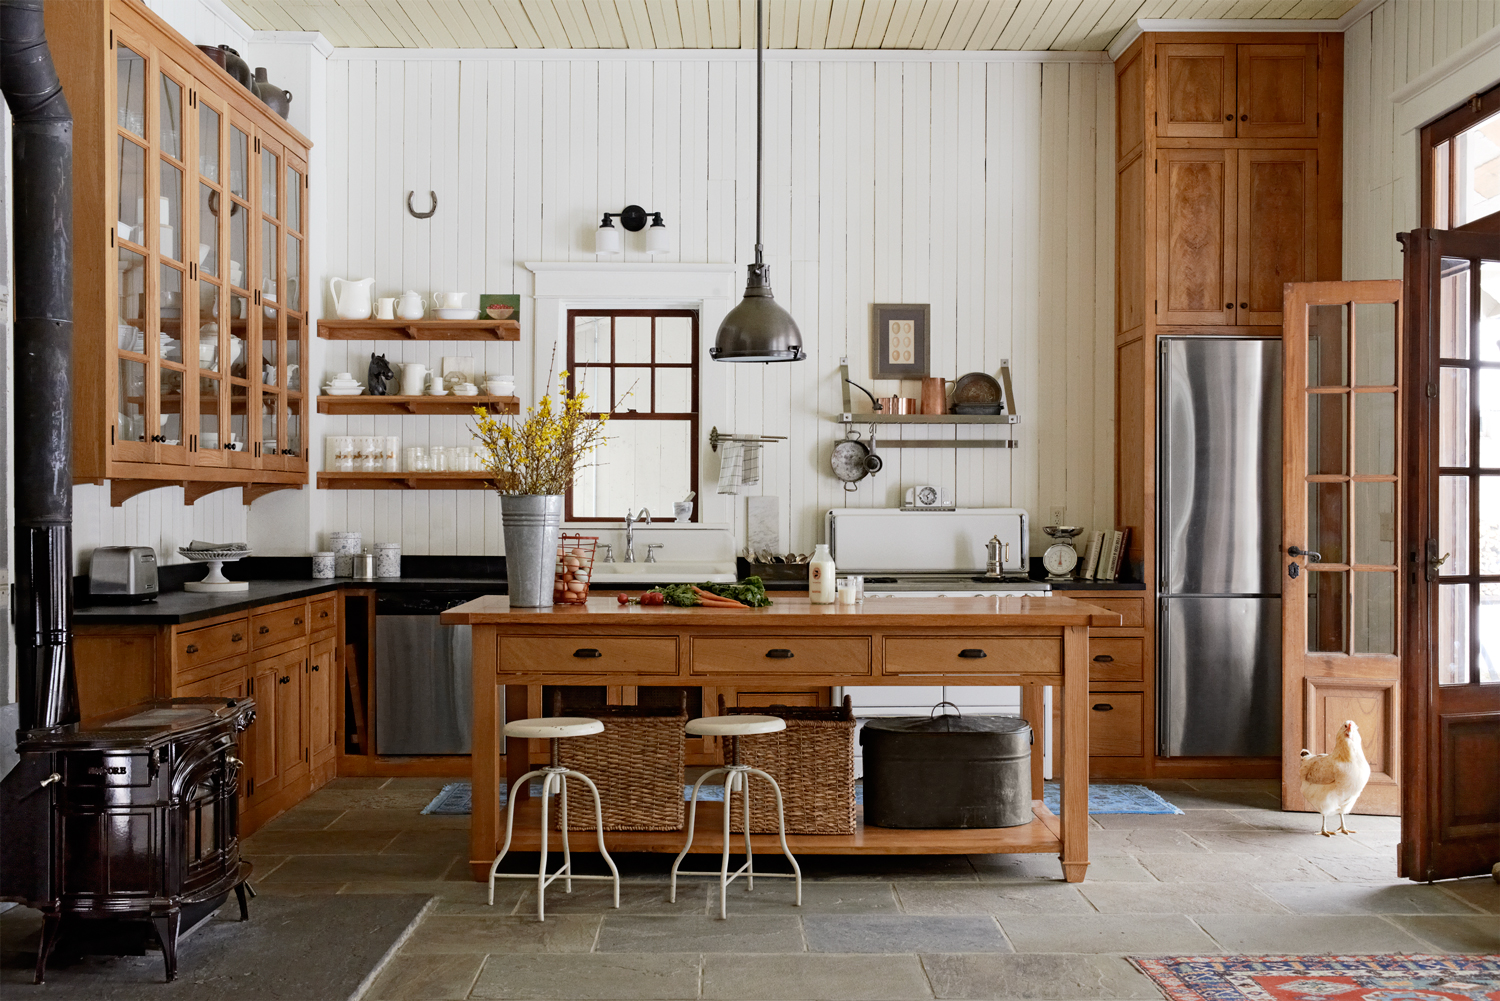 100+ kitchen design ideas - pictures of country kitchen decorating  inspiration JIXFUTR